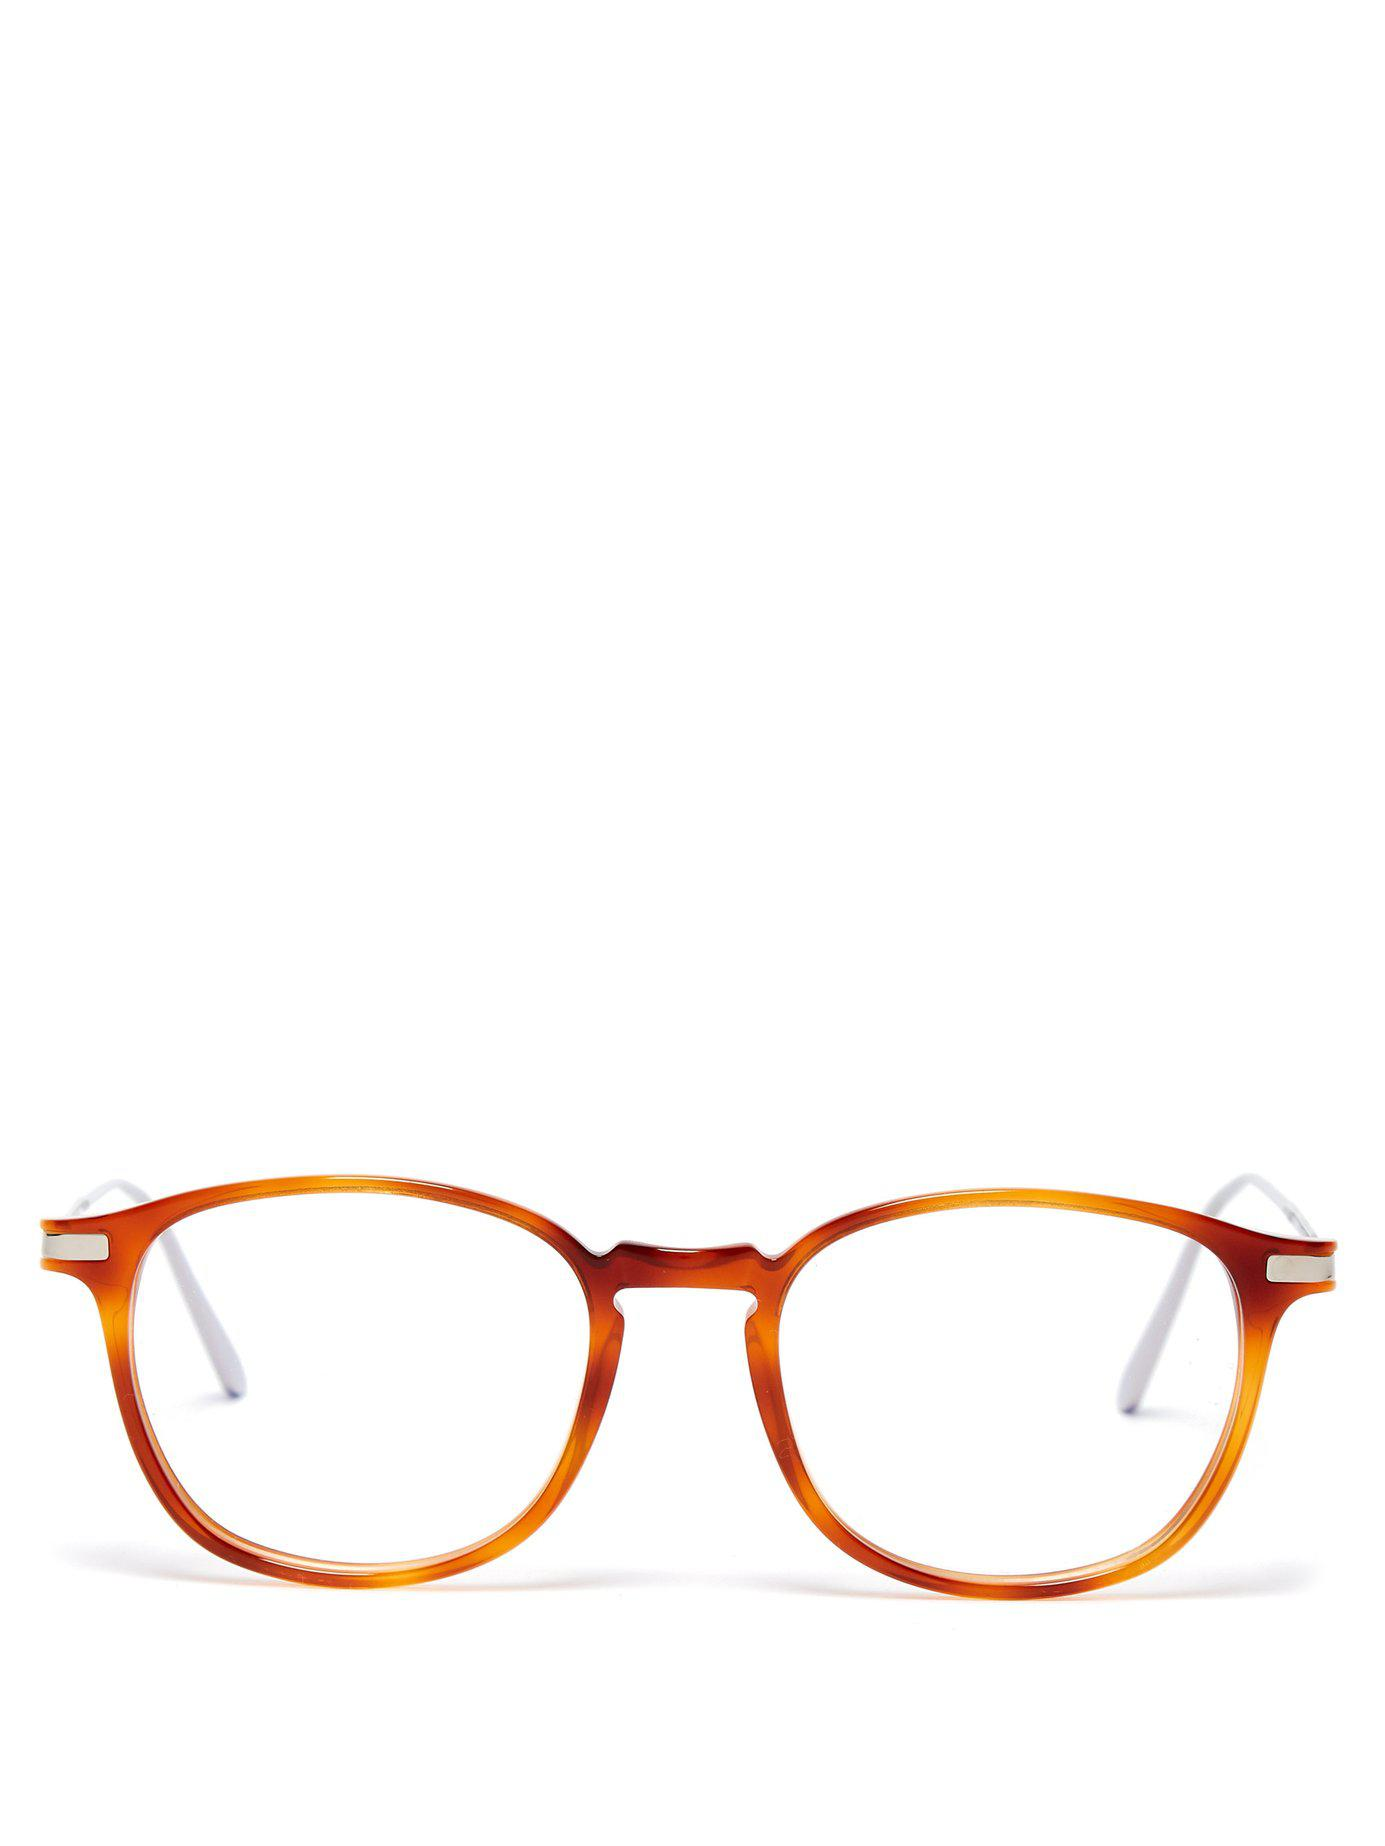 941ae17a8d Lyst - Cutler   Gross Round Frame Tortoiseshell Acetate Glasses in ...